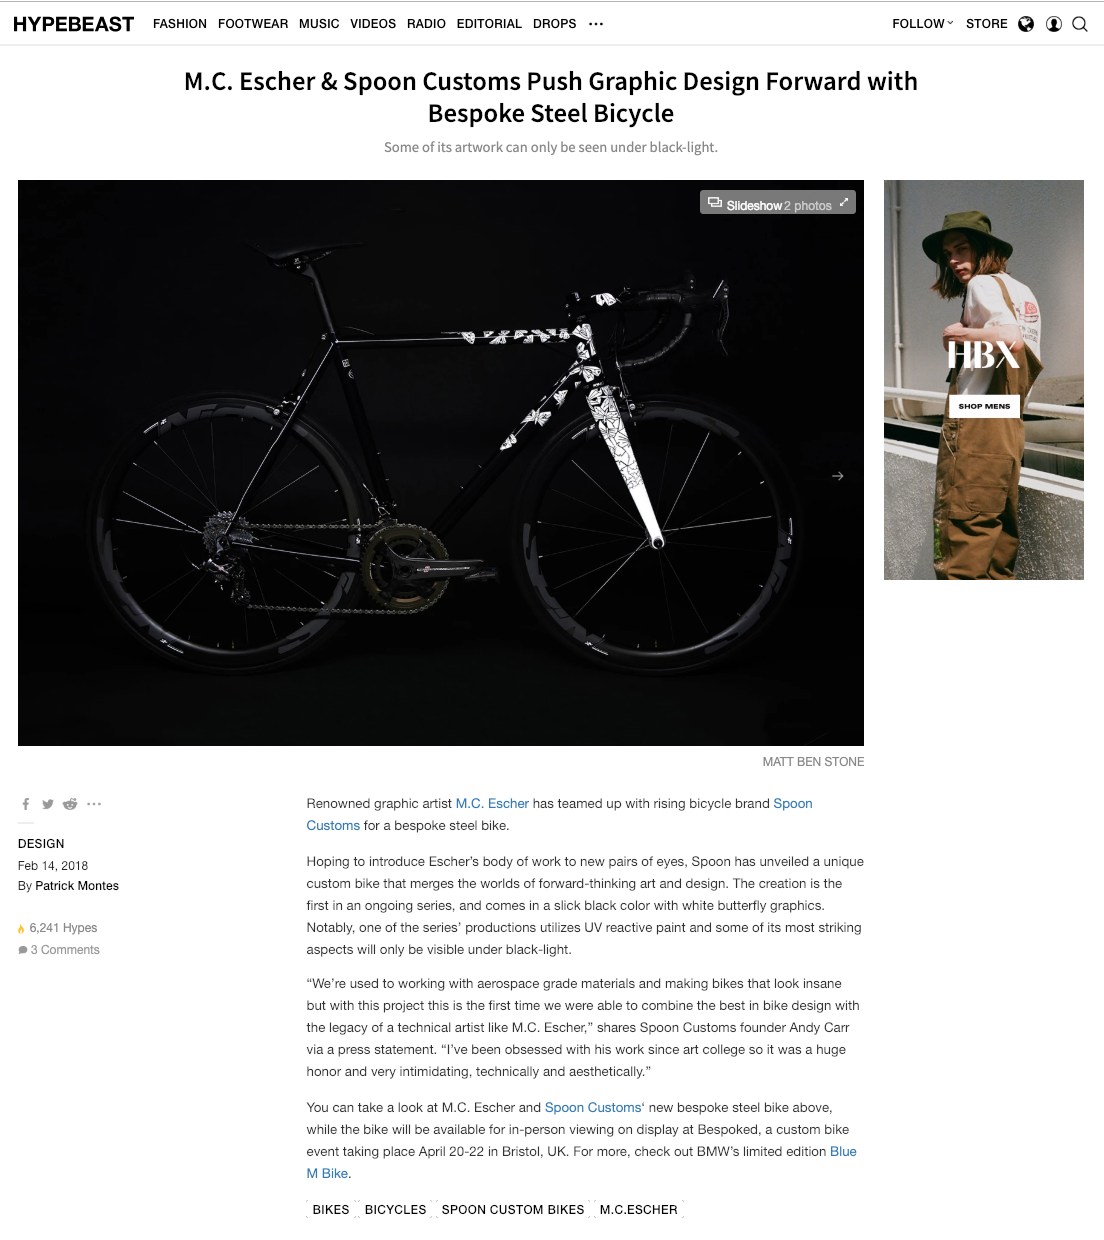 HYPEBEAST - M.C. Escher & Spoon Customs Push Graphic Design Forward with Bespoke Steel Bicycle